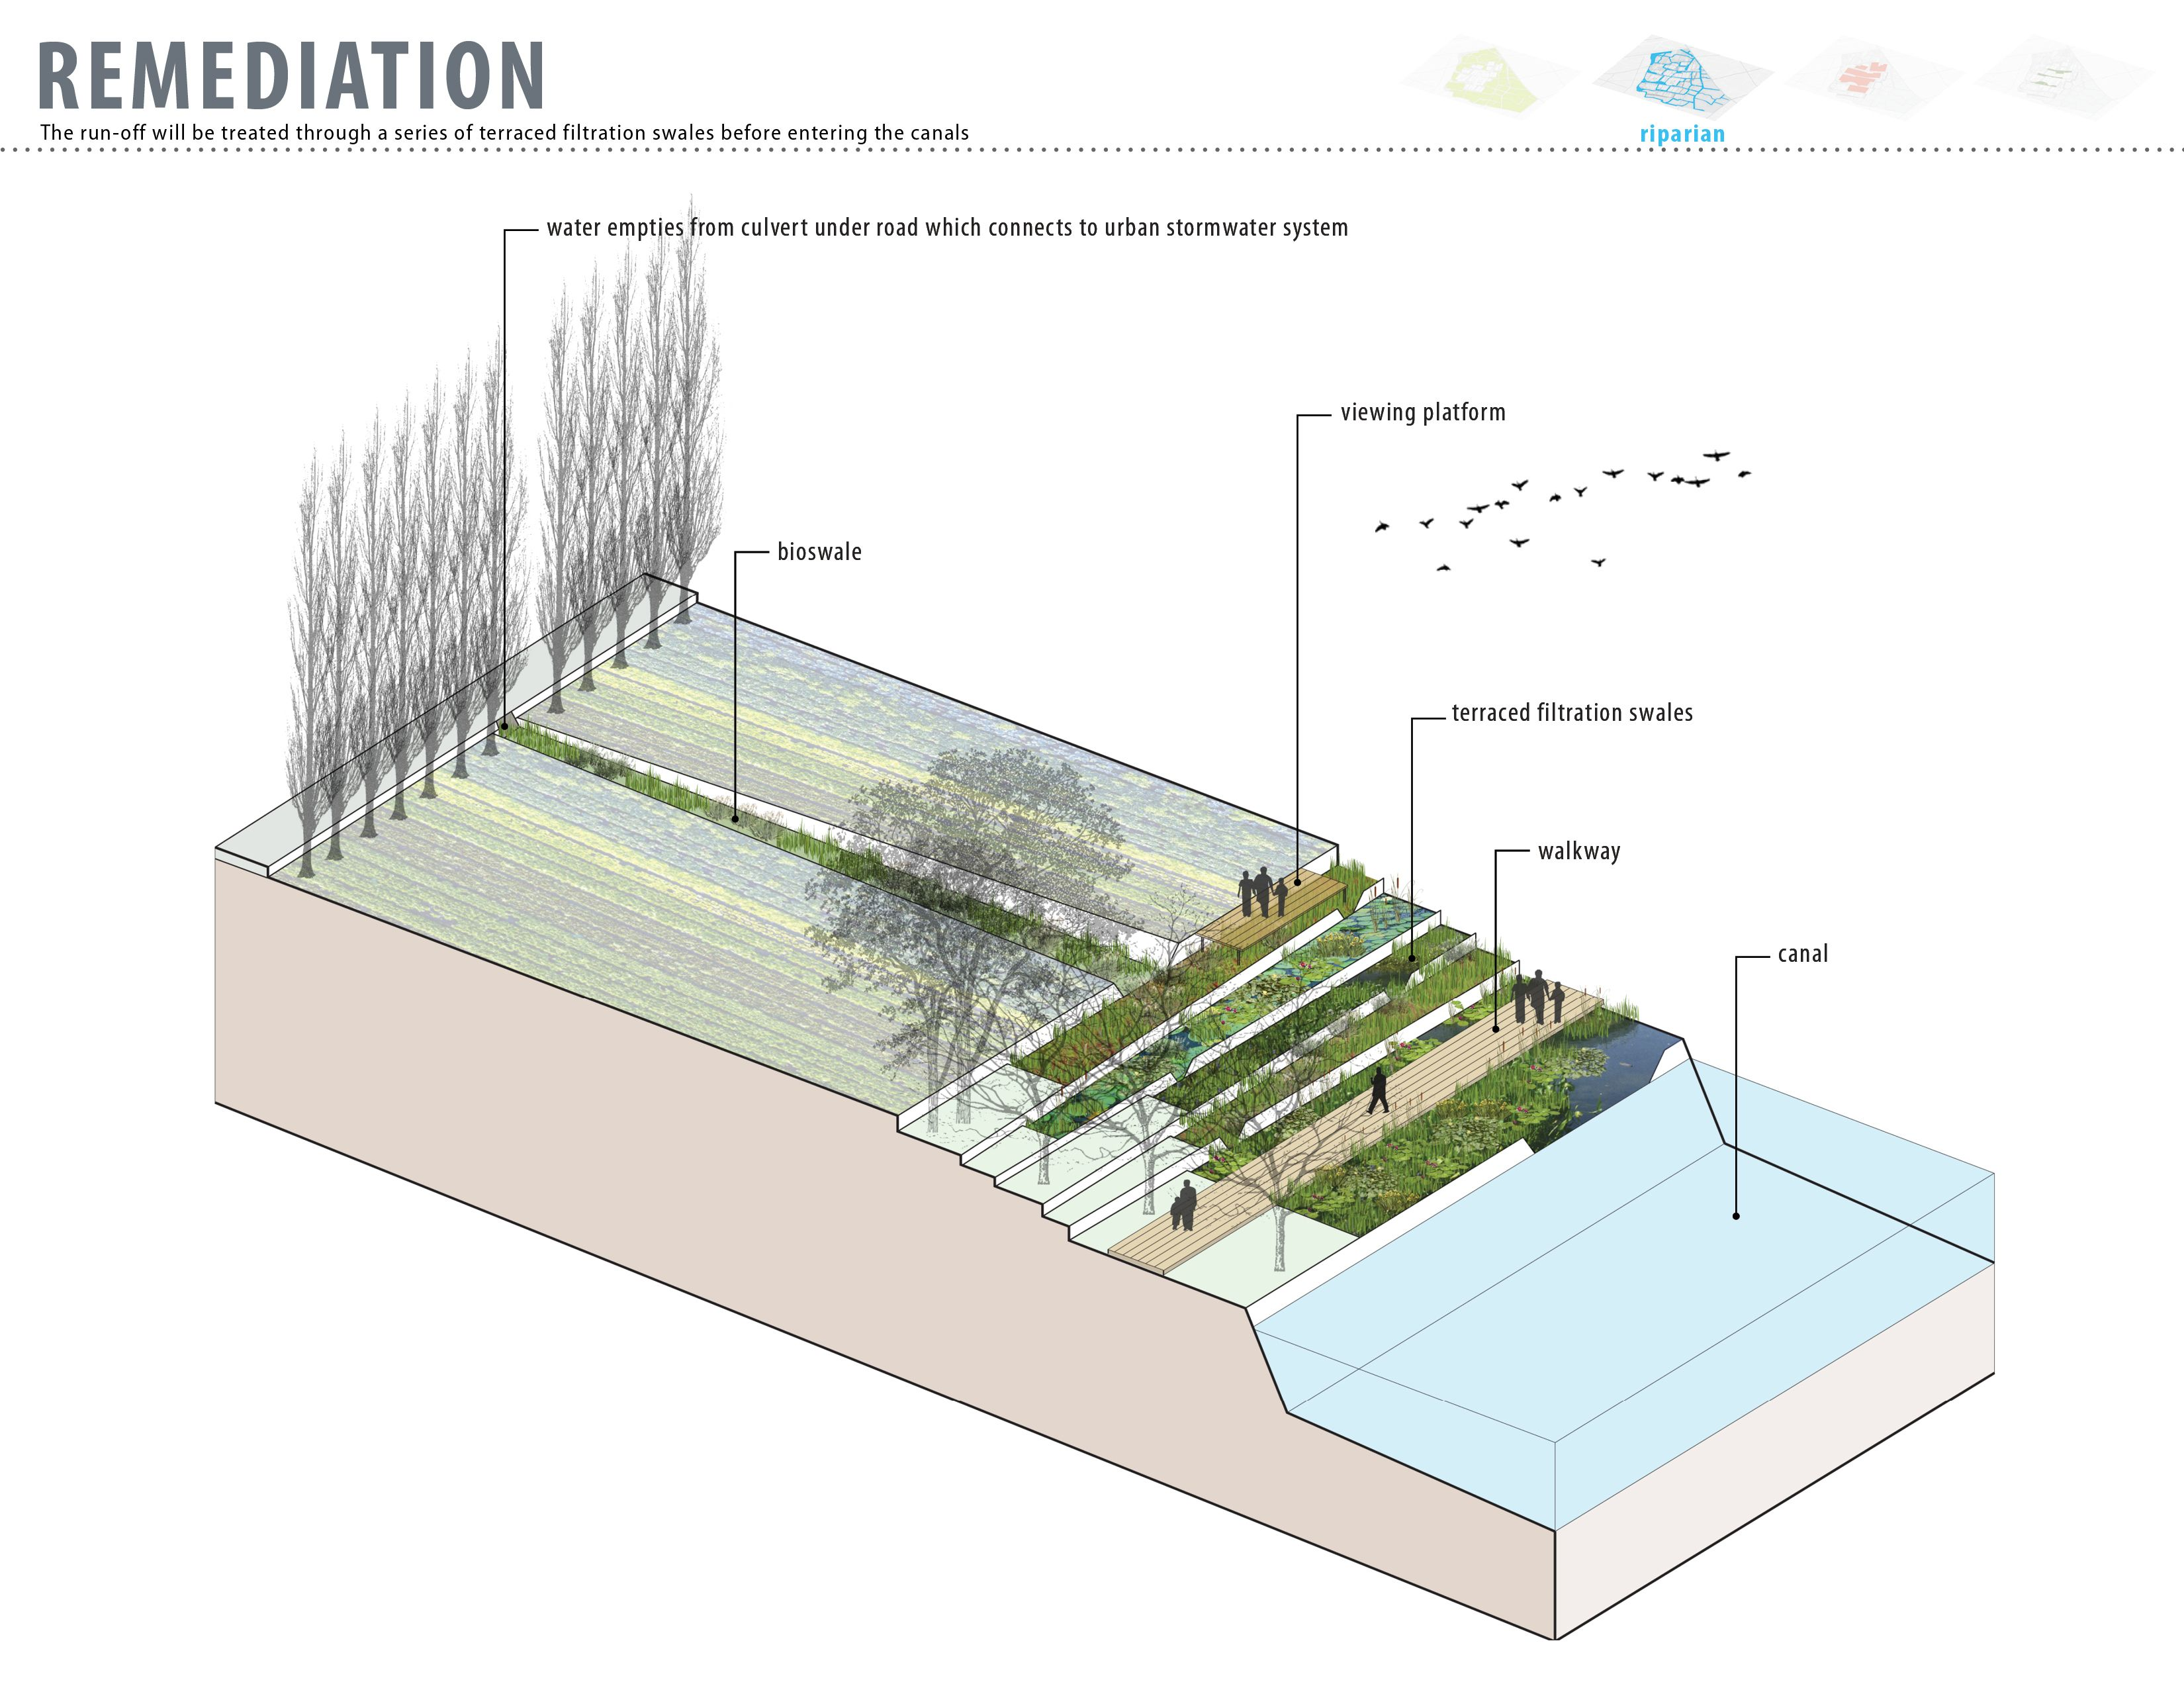 The run off will be treated through a series of terraced for Terrace farming diagram